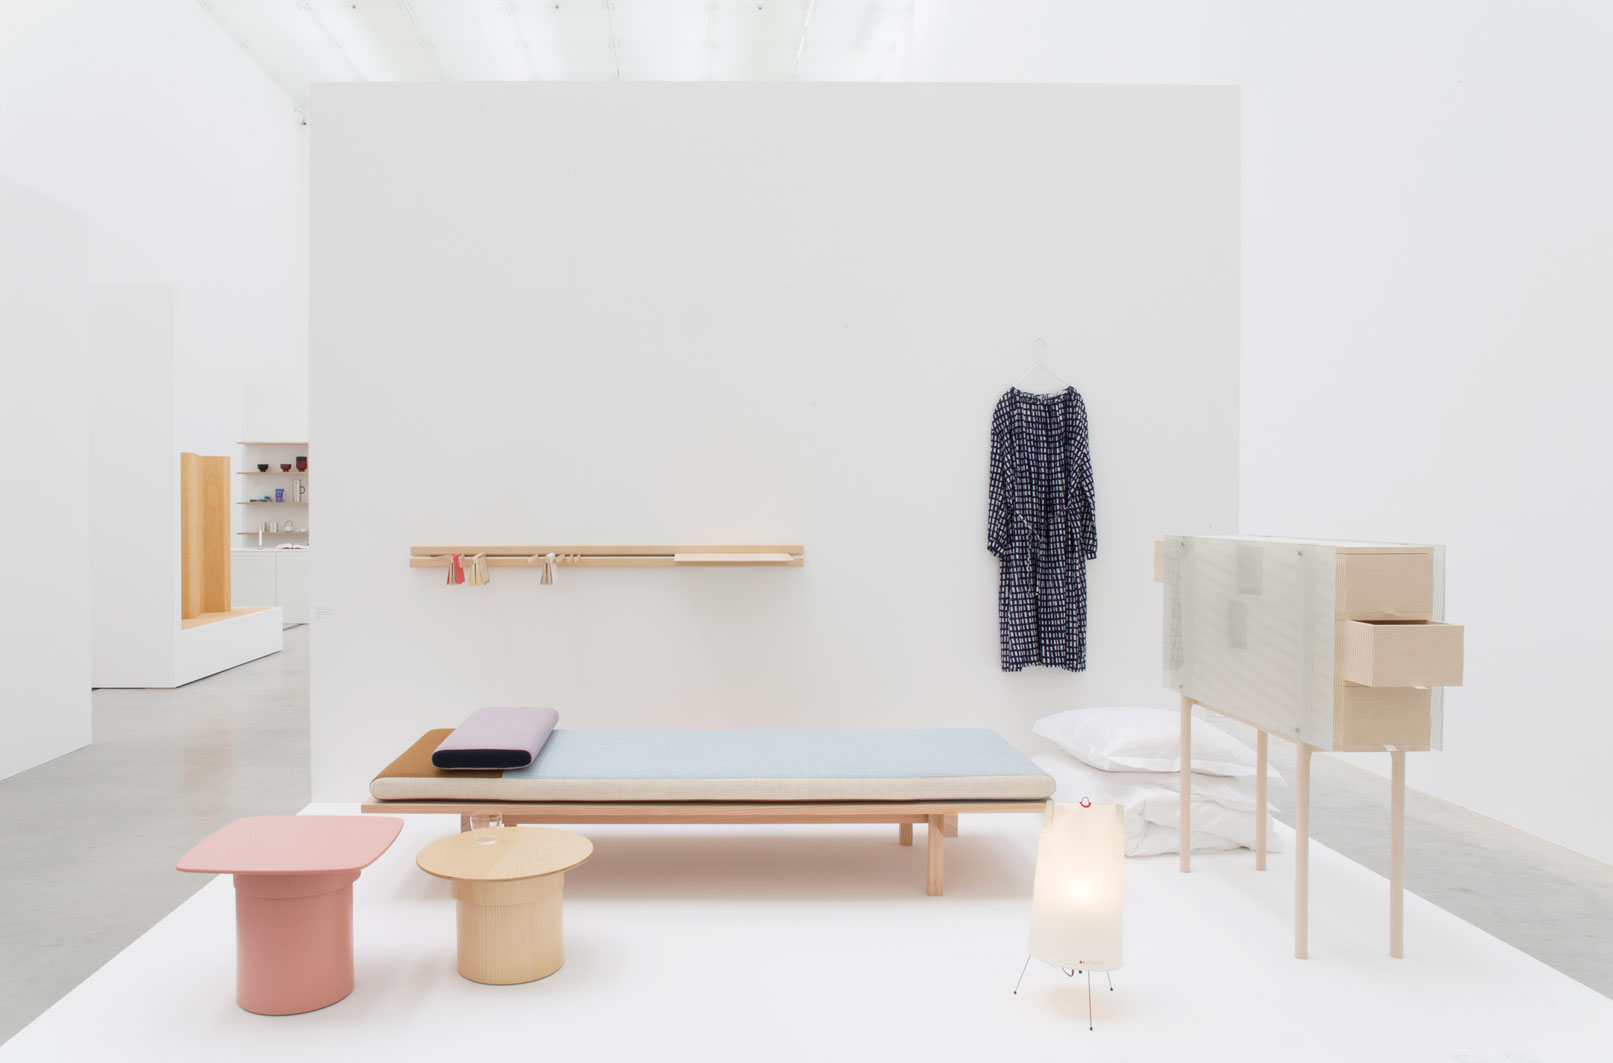 """Last autumn, Cecilie was the co-curator of the exhibition """"Everyday Life $ع Signs Of Awareness"""" at the 21st Century Museum of Contemporary Art Kanazawa on the occasion of the 150th anniversary of the relationship between Japan and Danemark."""